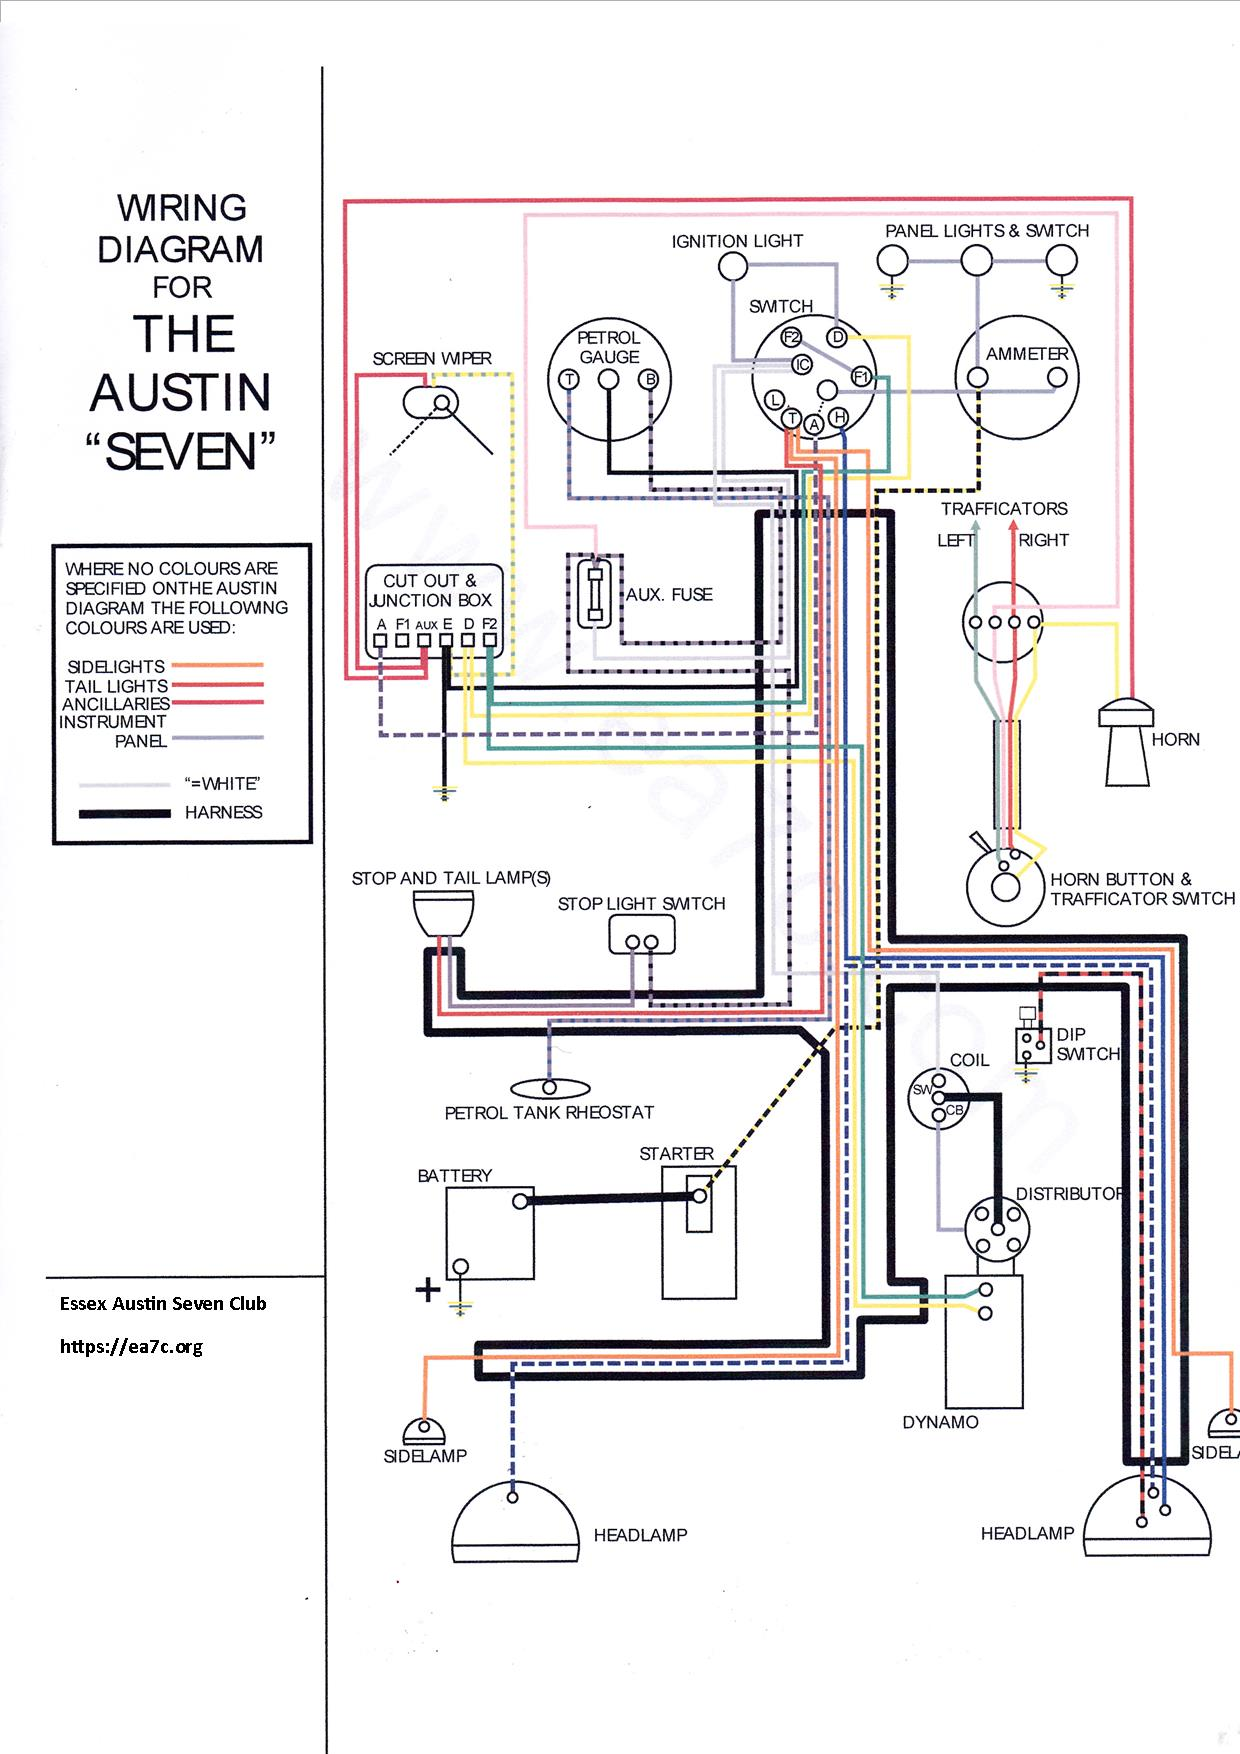 small resolution of austin seven wiring diagram online wiring diagram technical data essex austin seven clubaustin seven wiring diagram